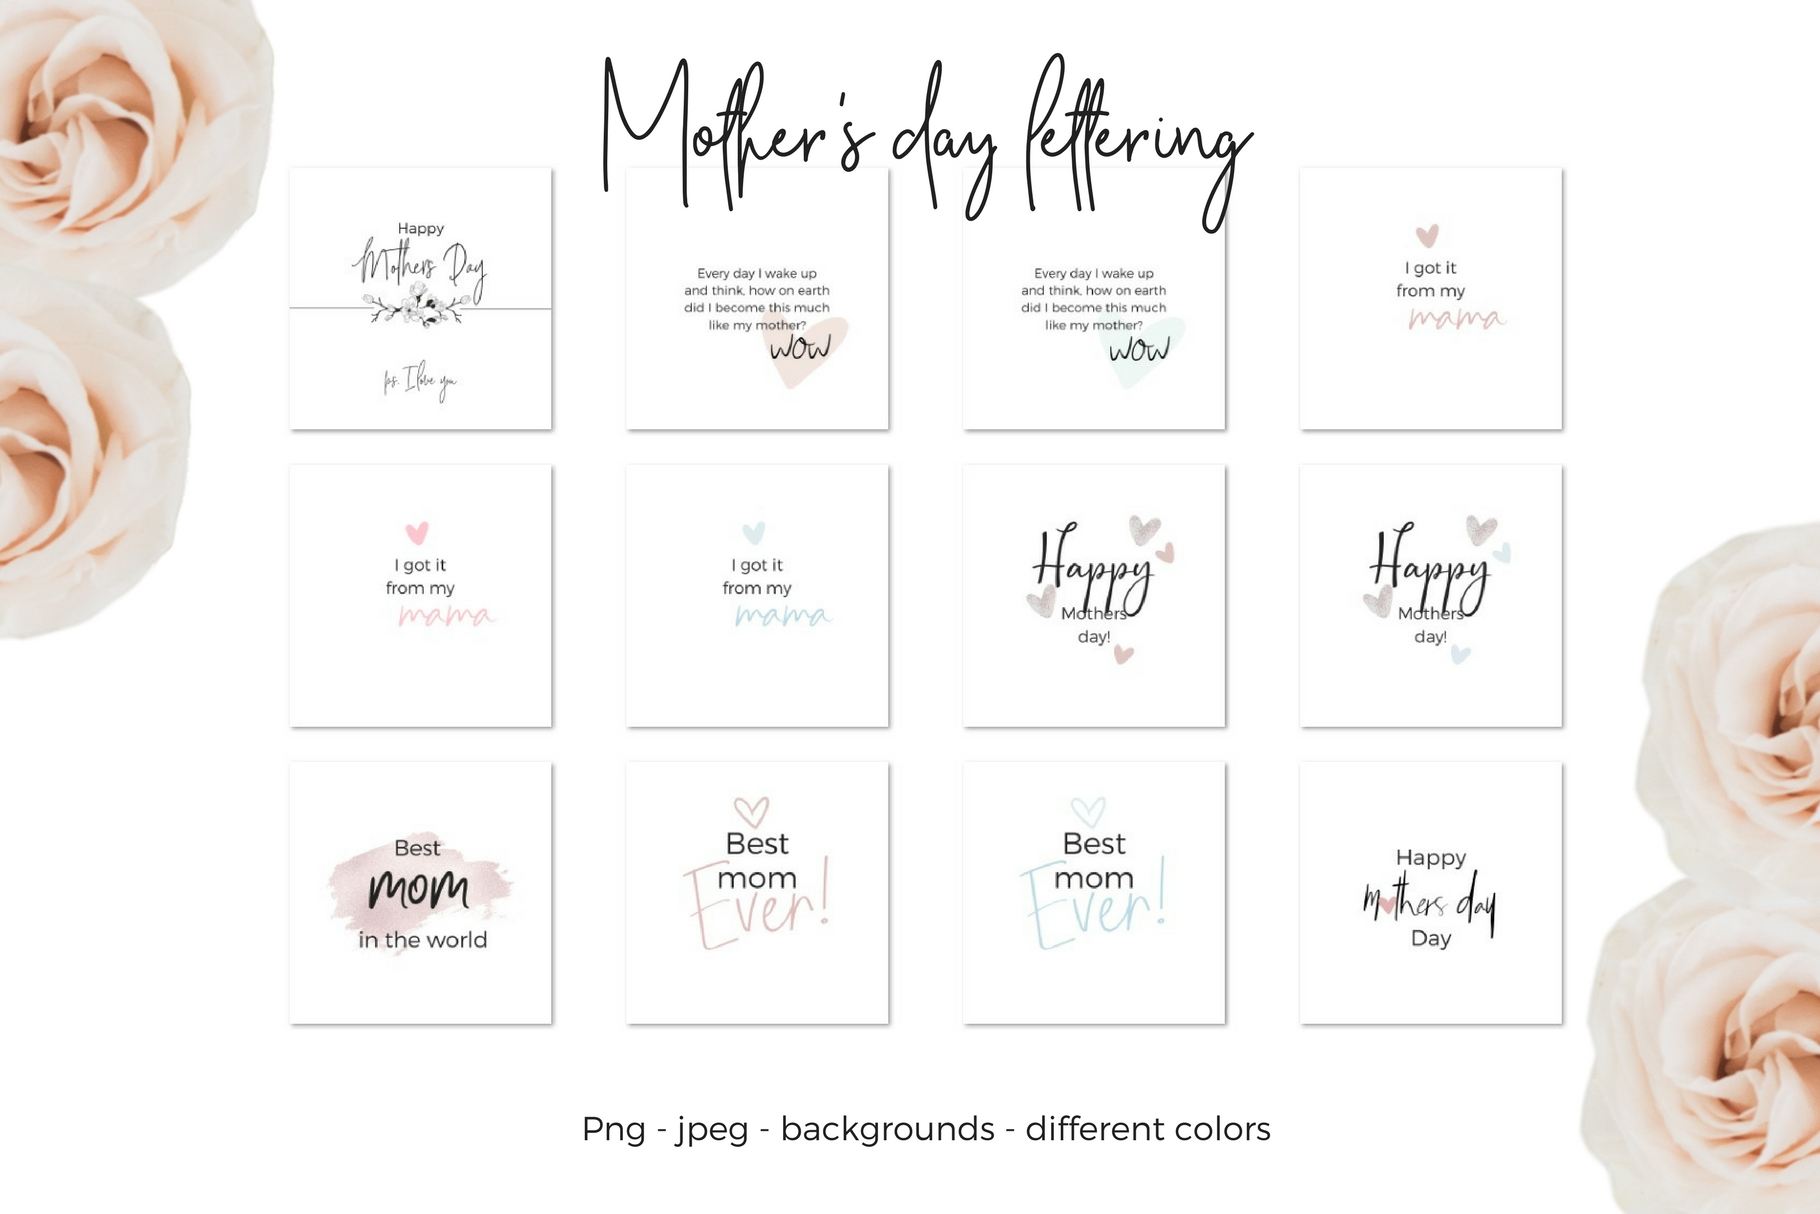 Mother's Day Lettering Graphic Web Elements By Creative Stash - Image 4